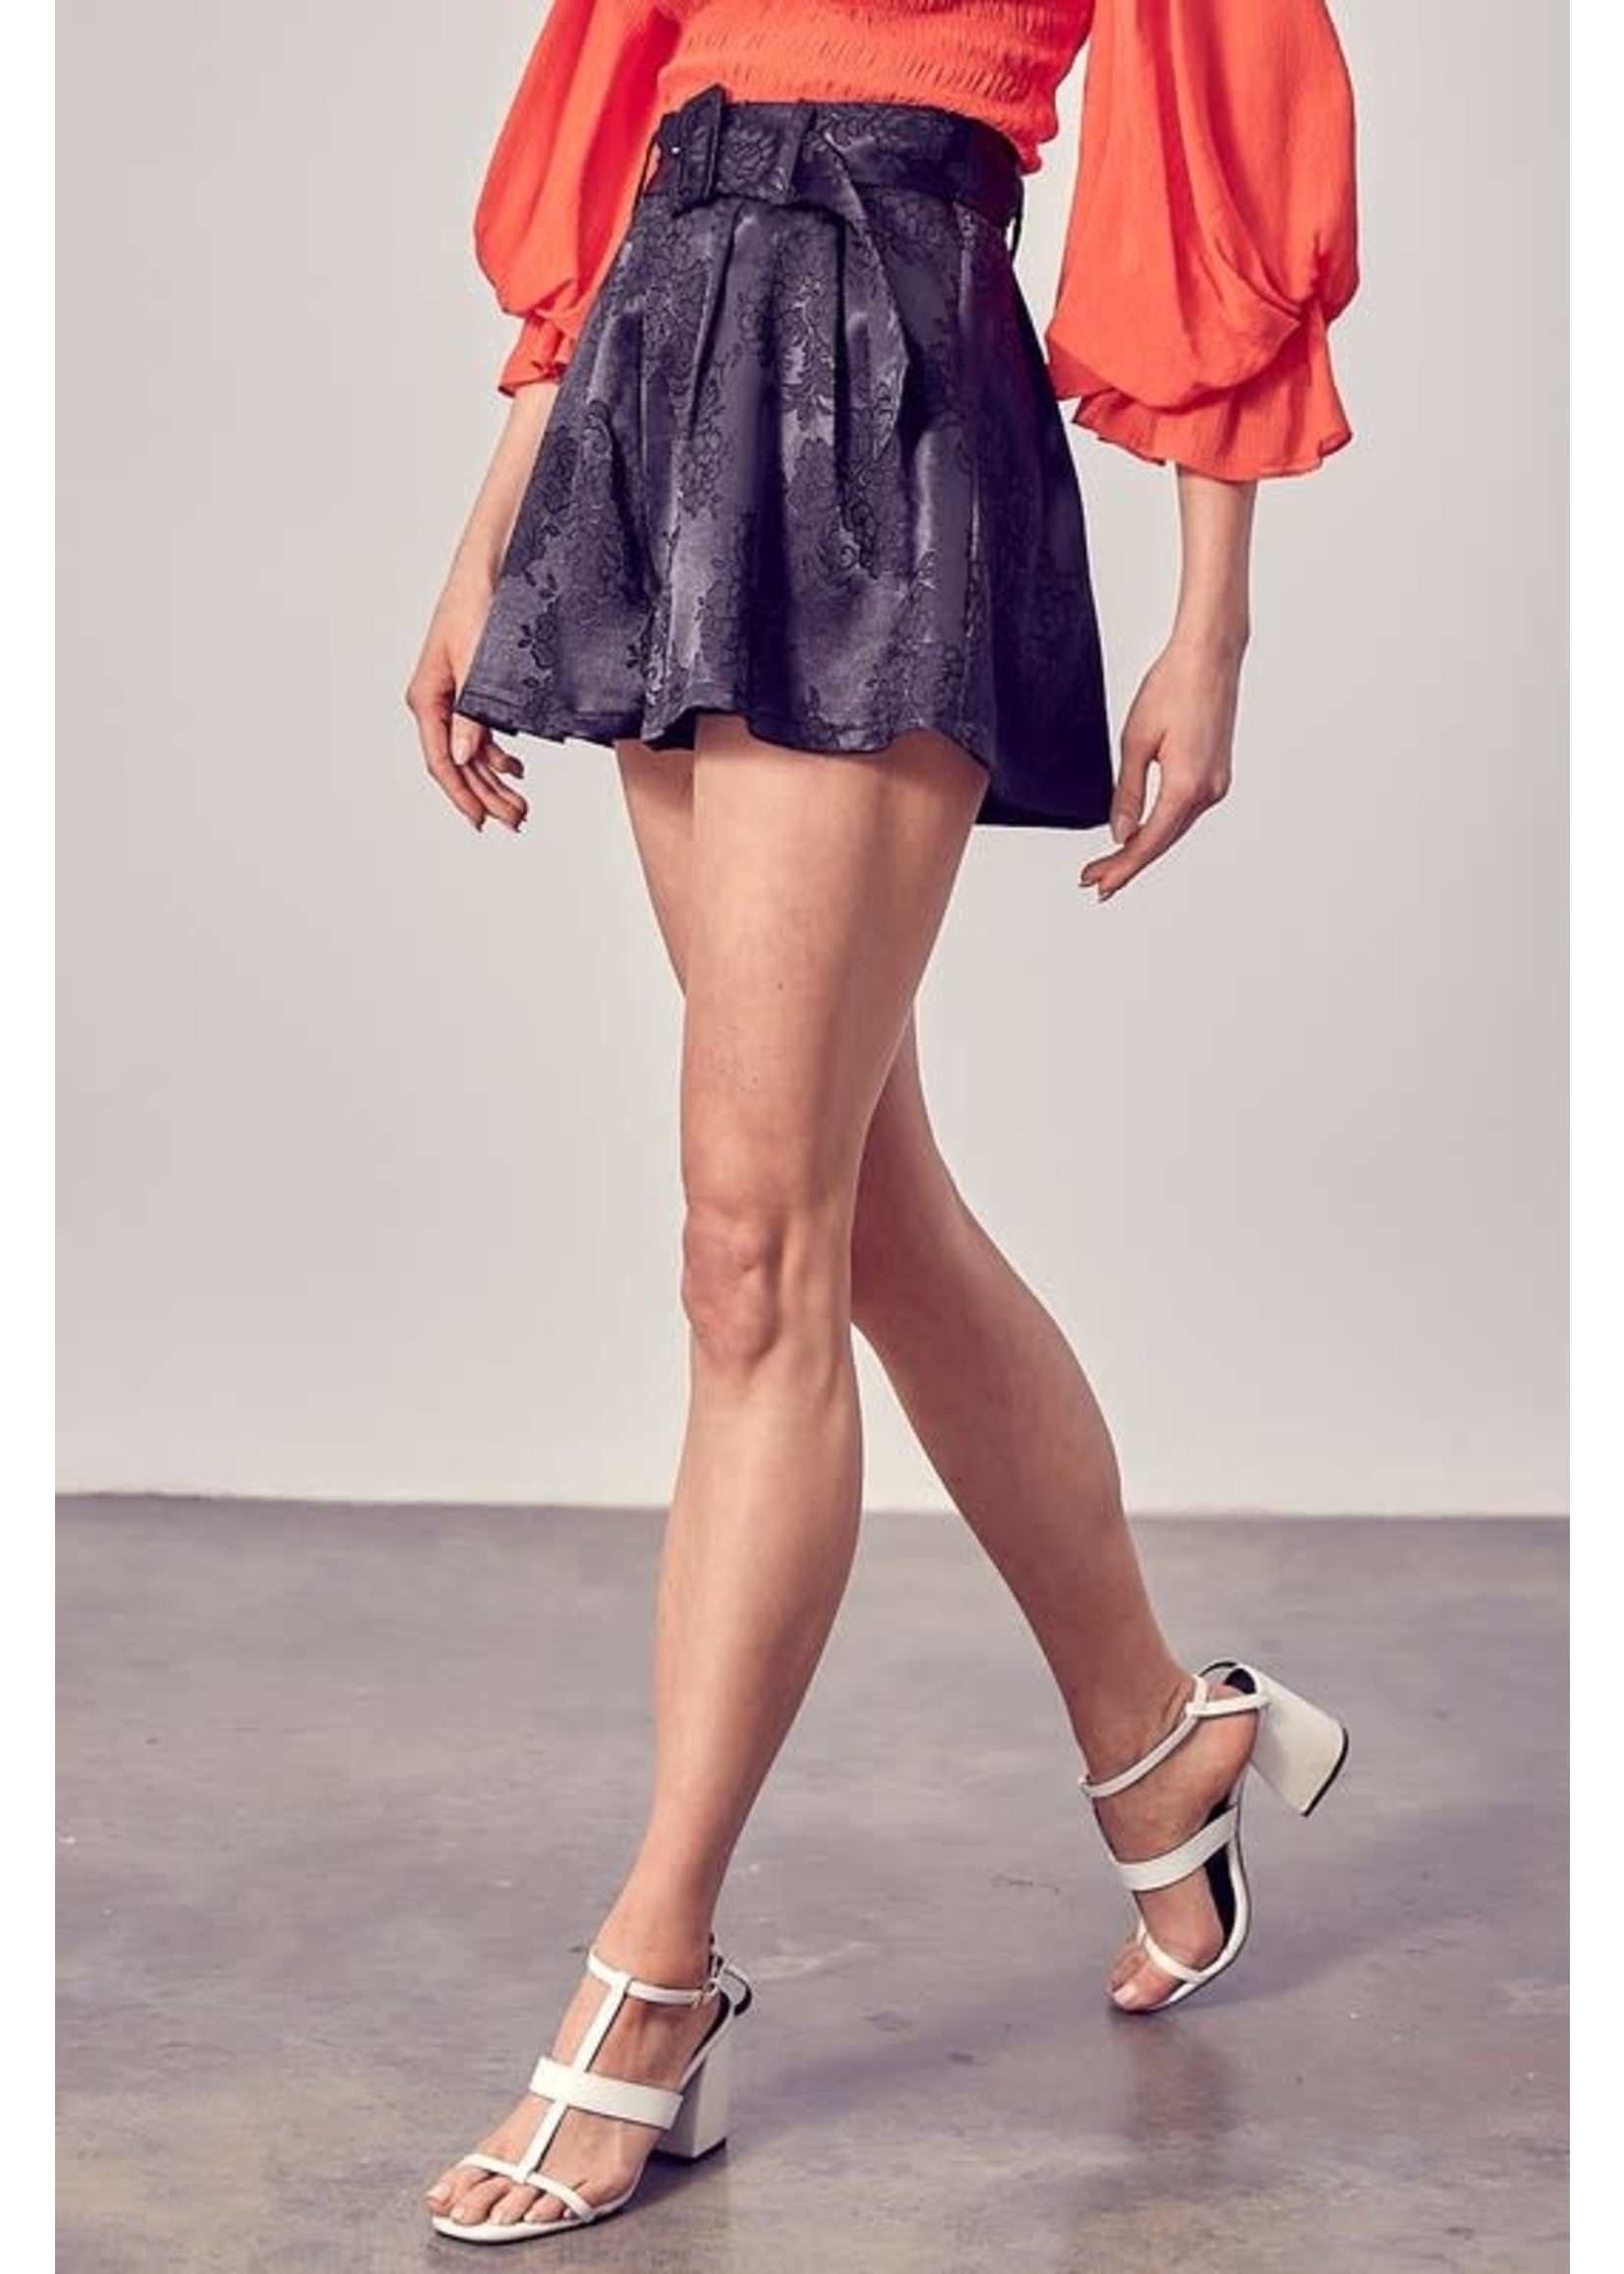 DO + BE Belted Floral Shorts - Y20021